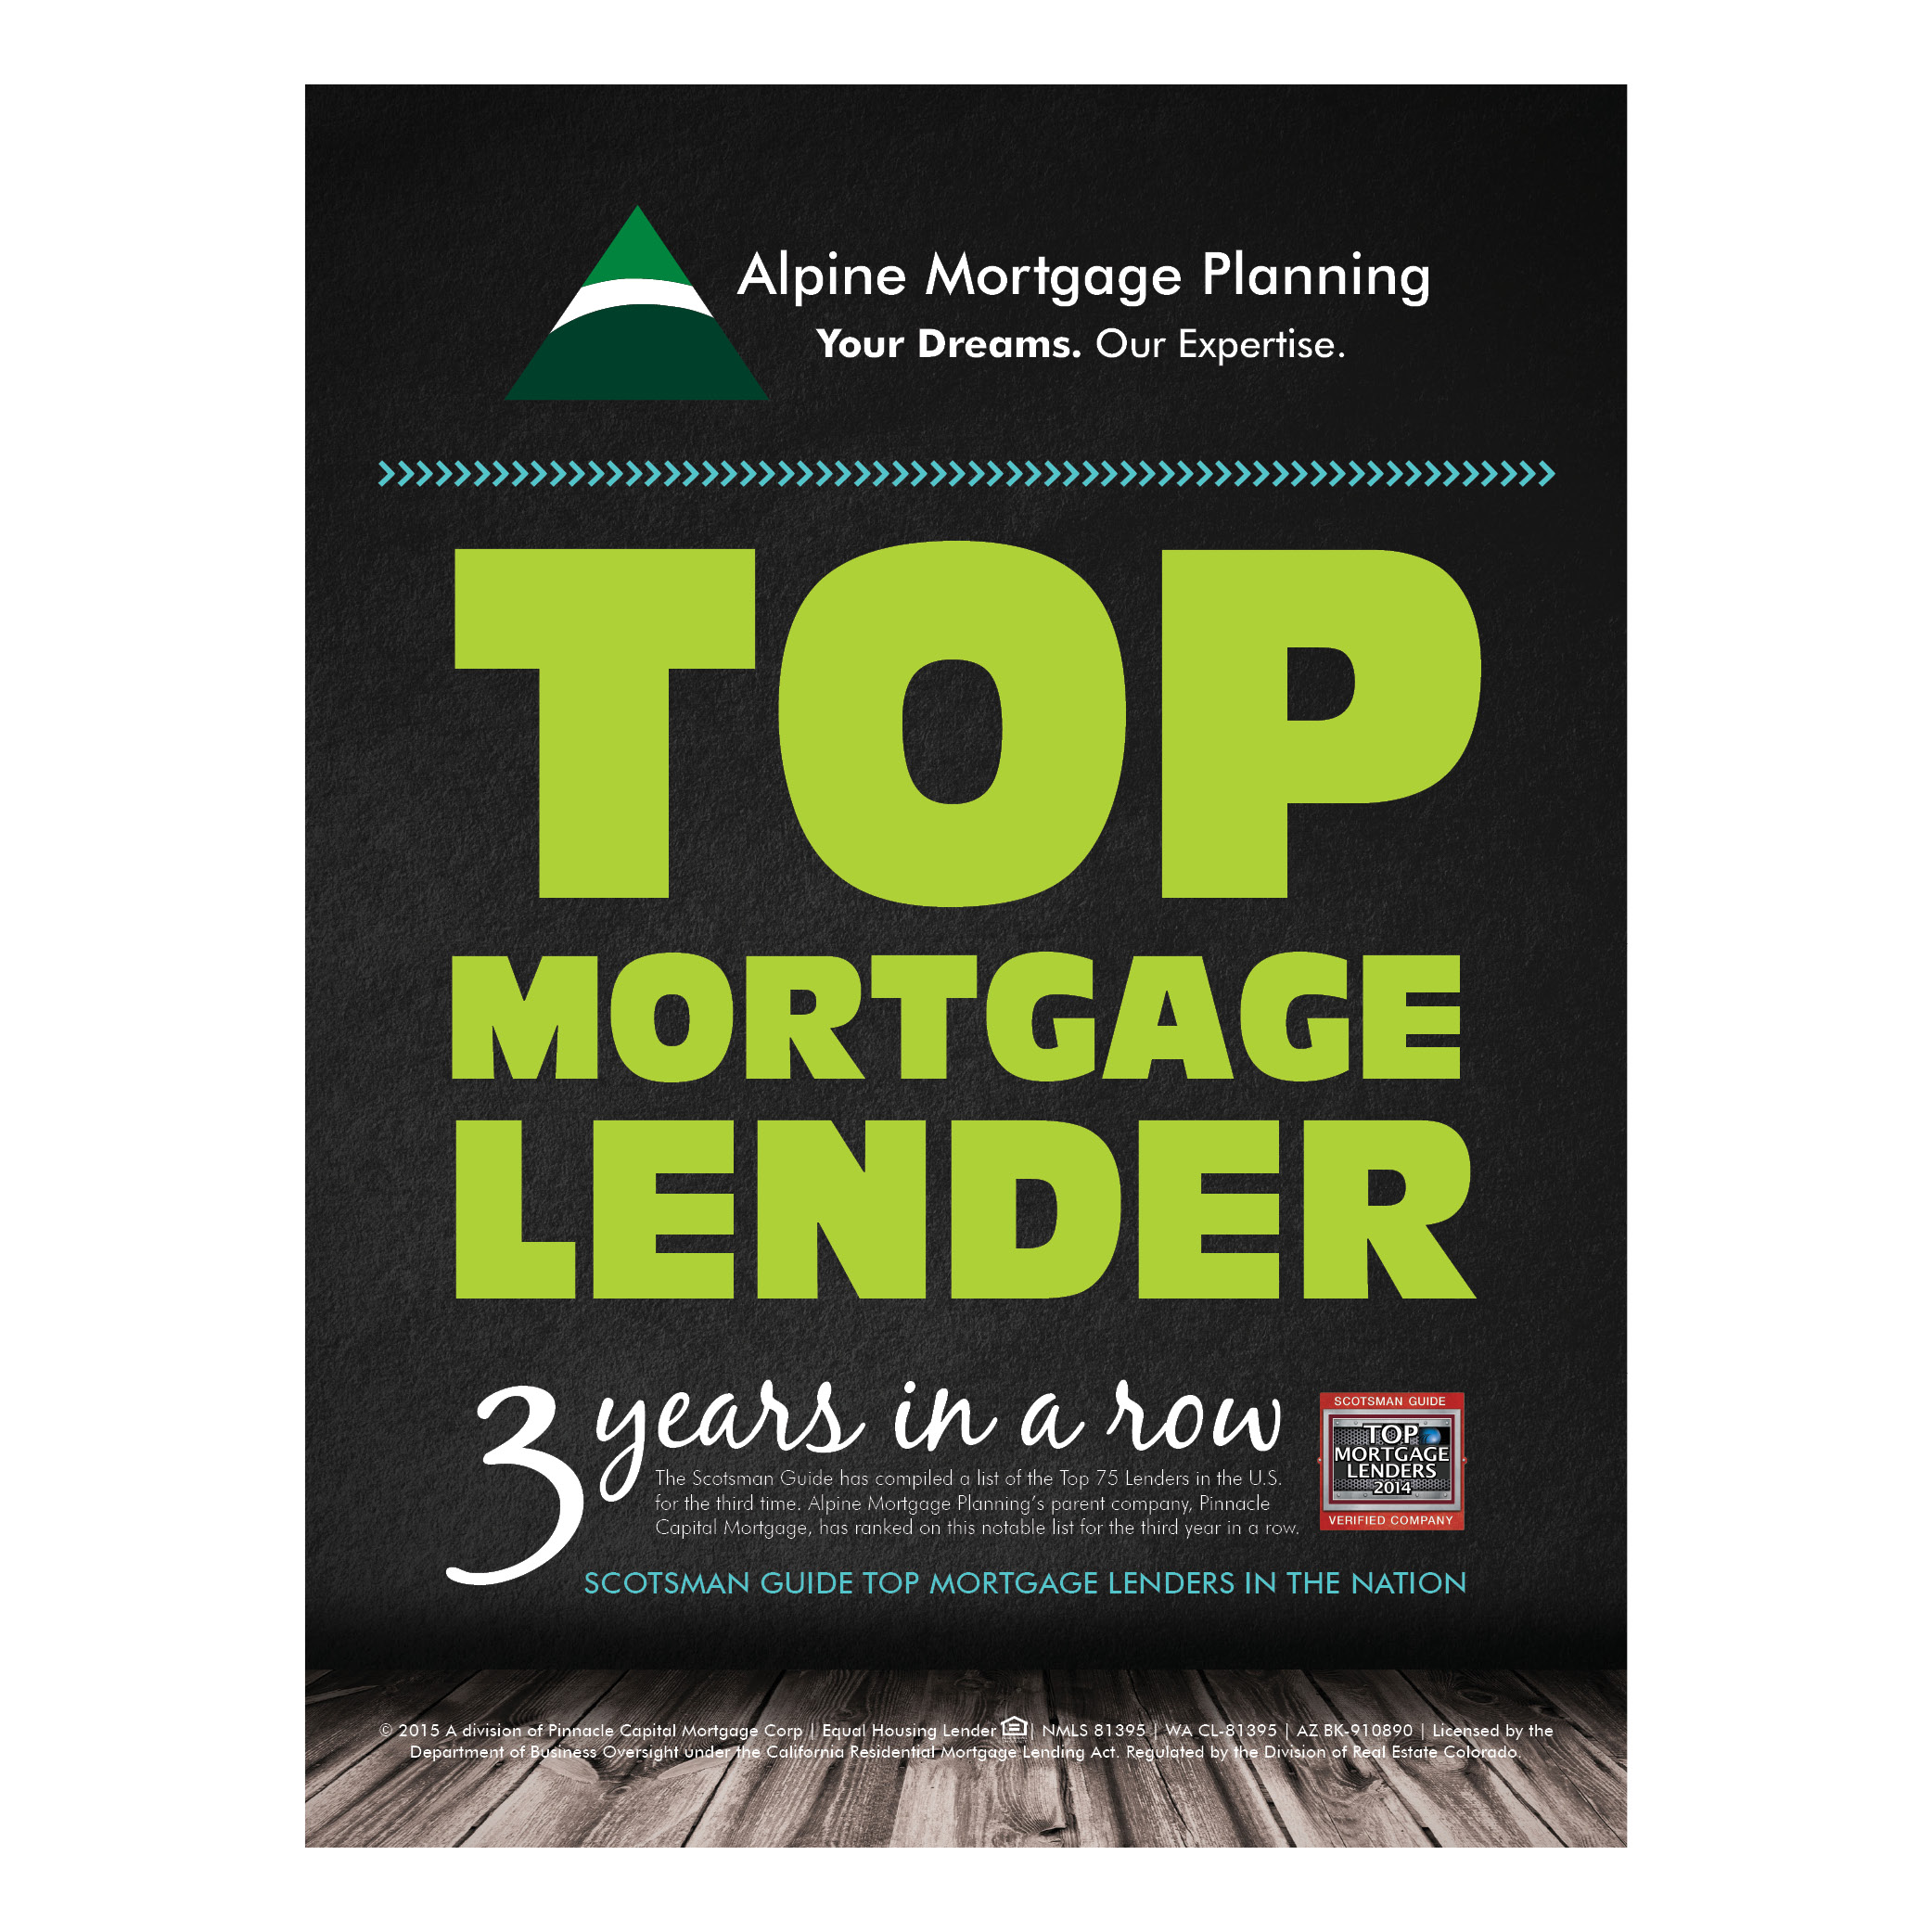 TOP MORTGAGE LENDER